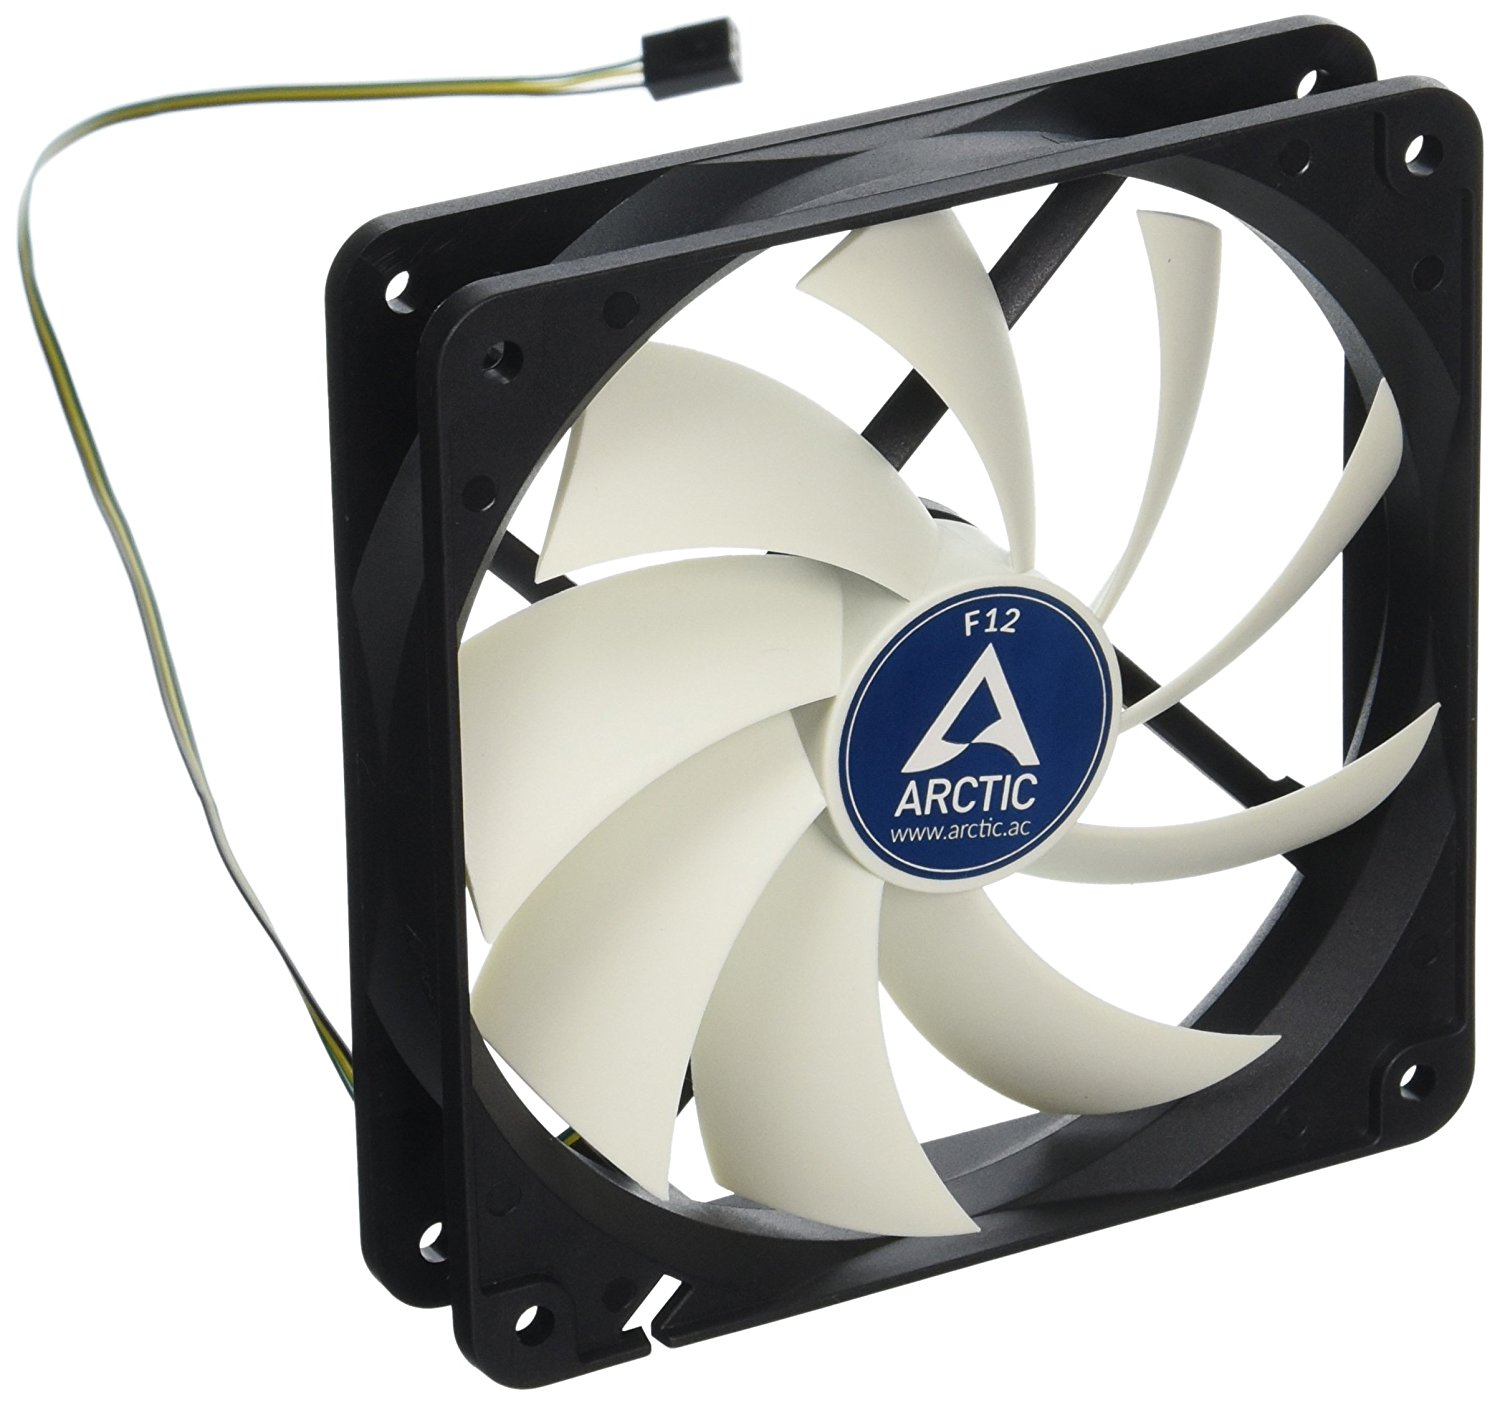 Arctic F12 - Value pack 120mm Standard Low Noise Case Fan Cooling, 5 Pack